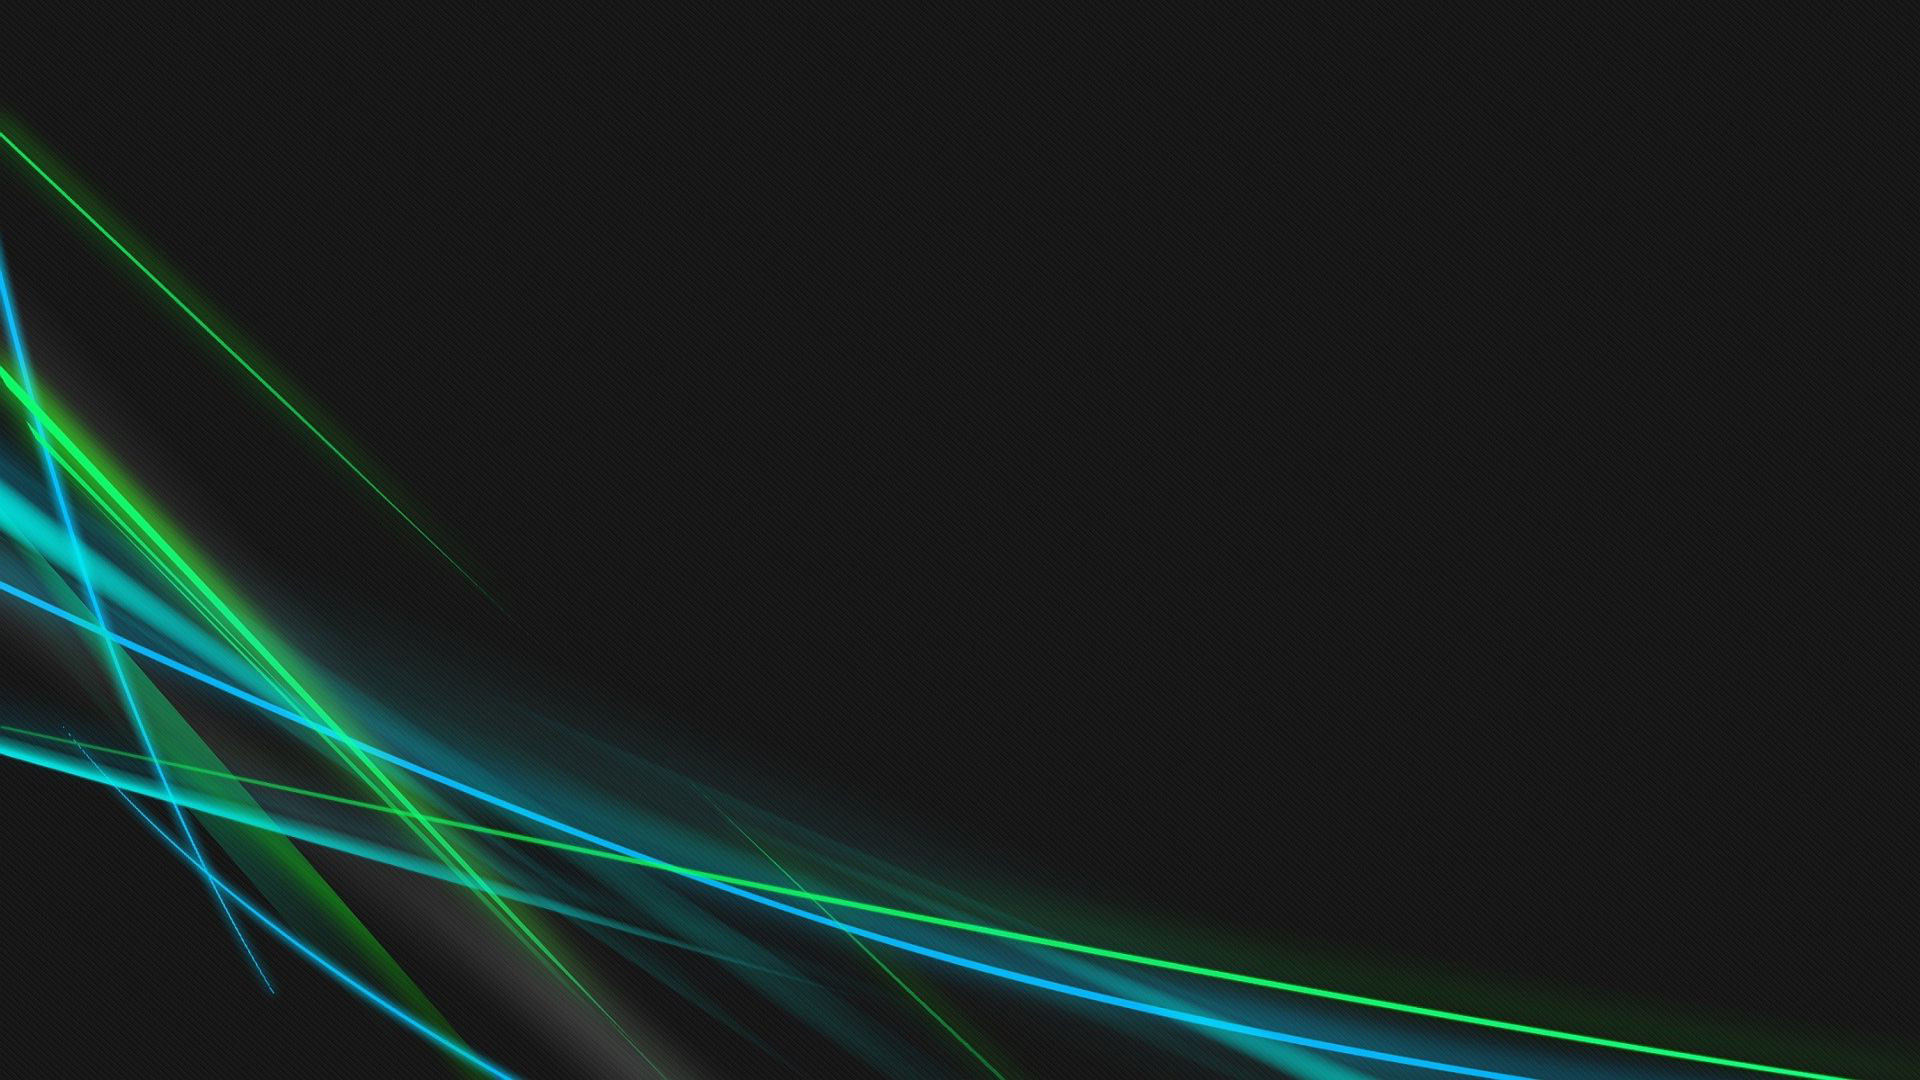 1920x1080 Blue and green neon curves wallpaper - 578863